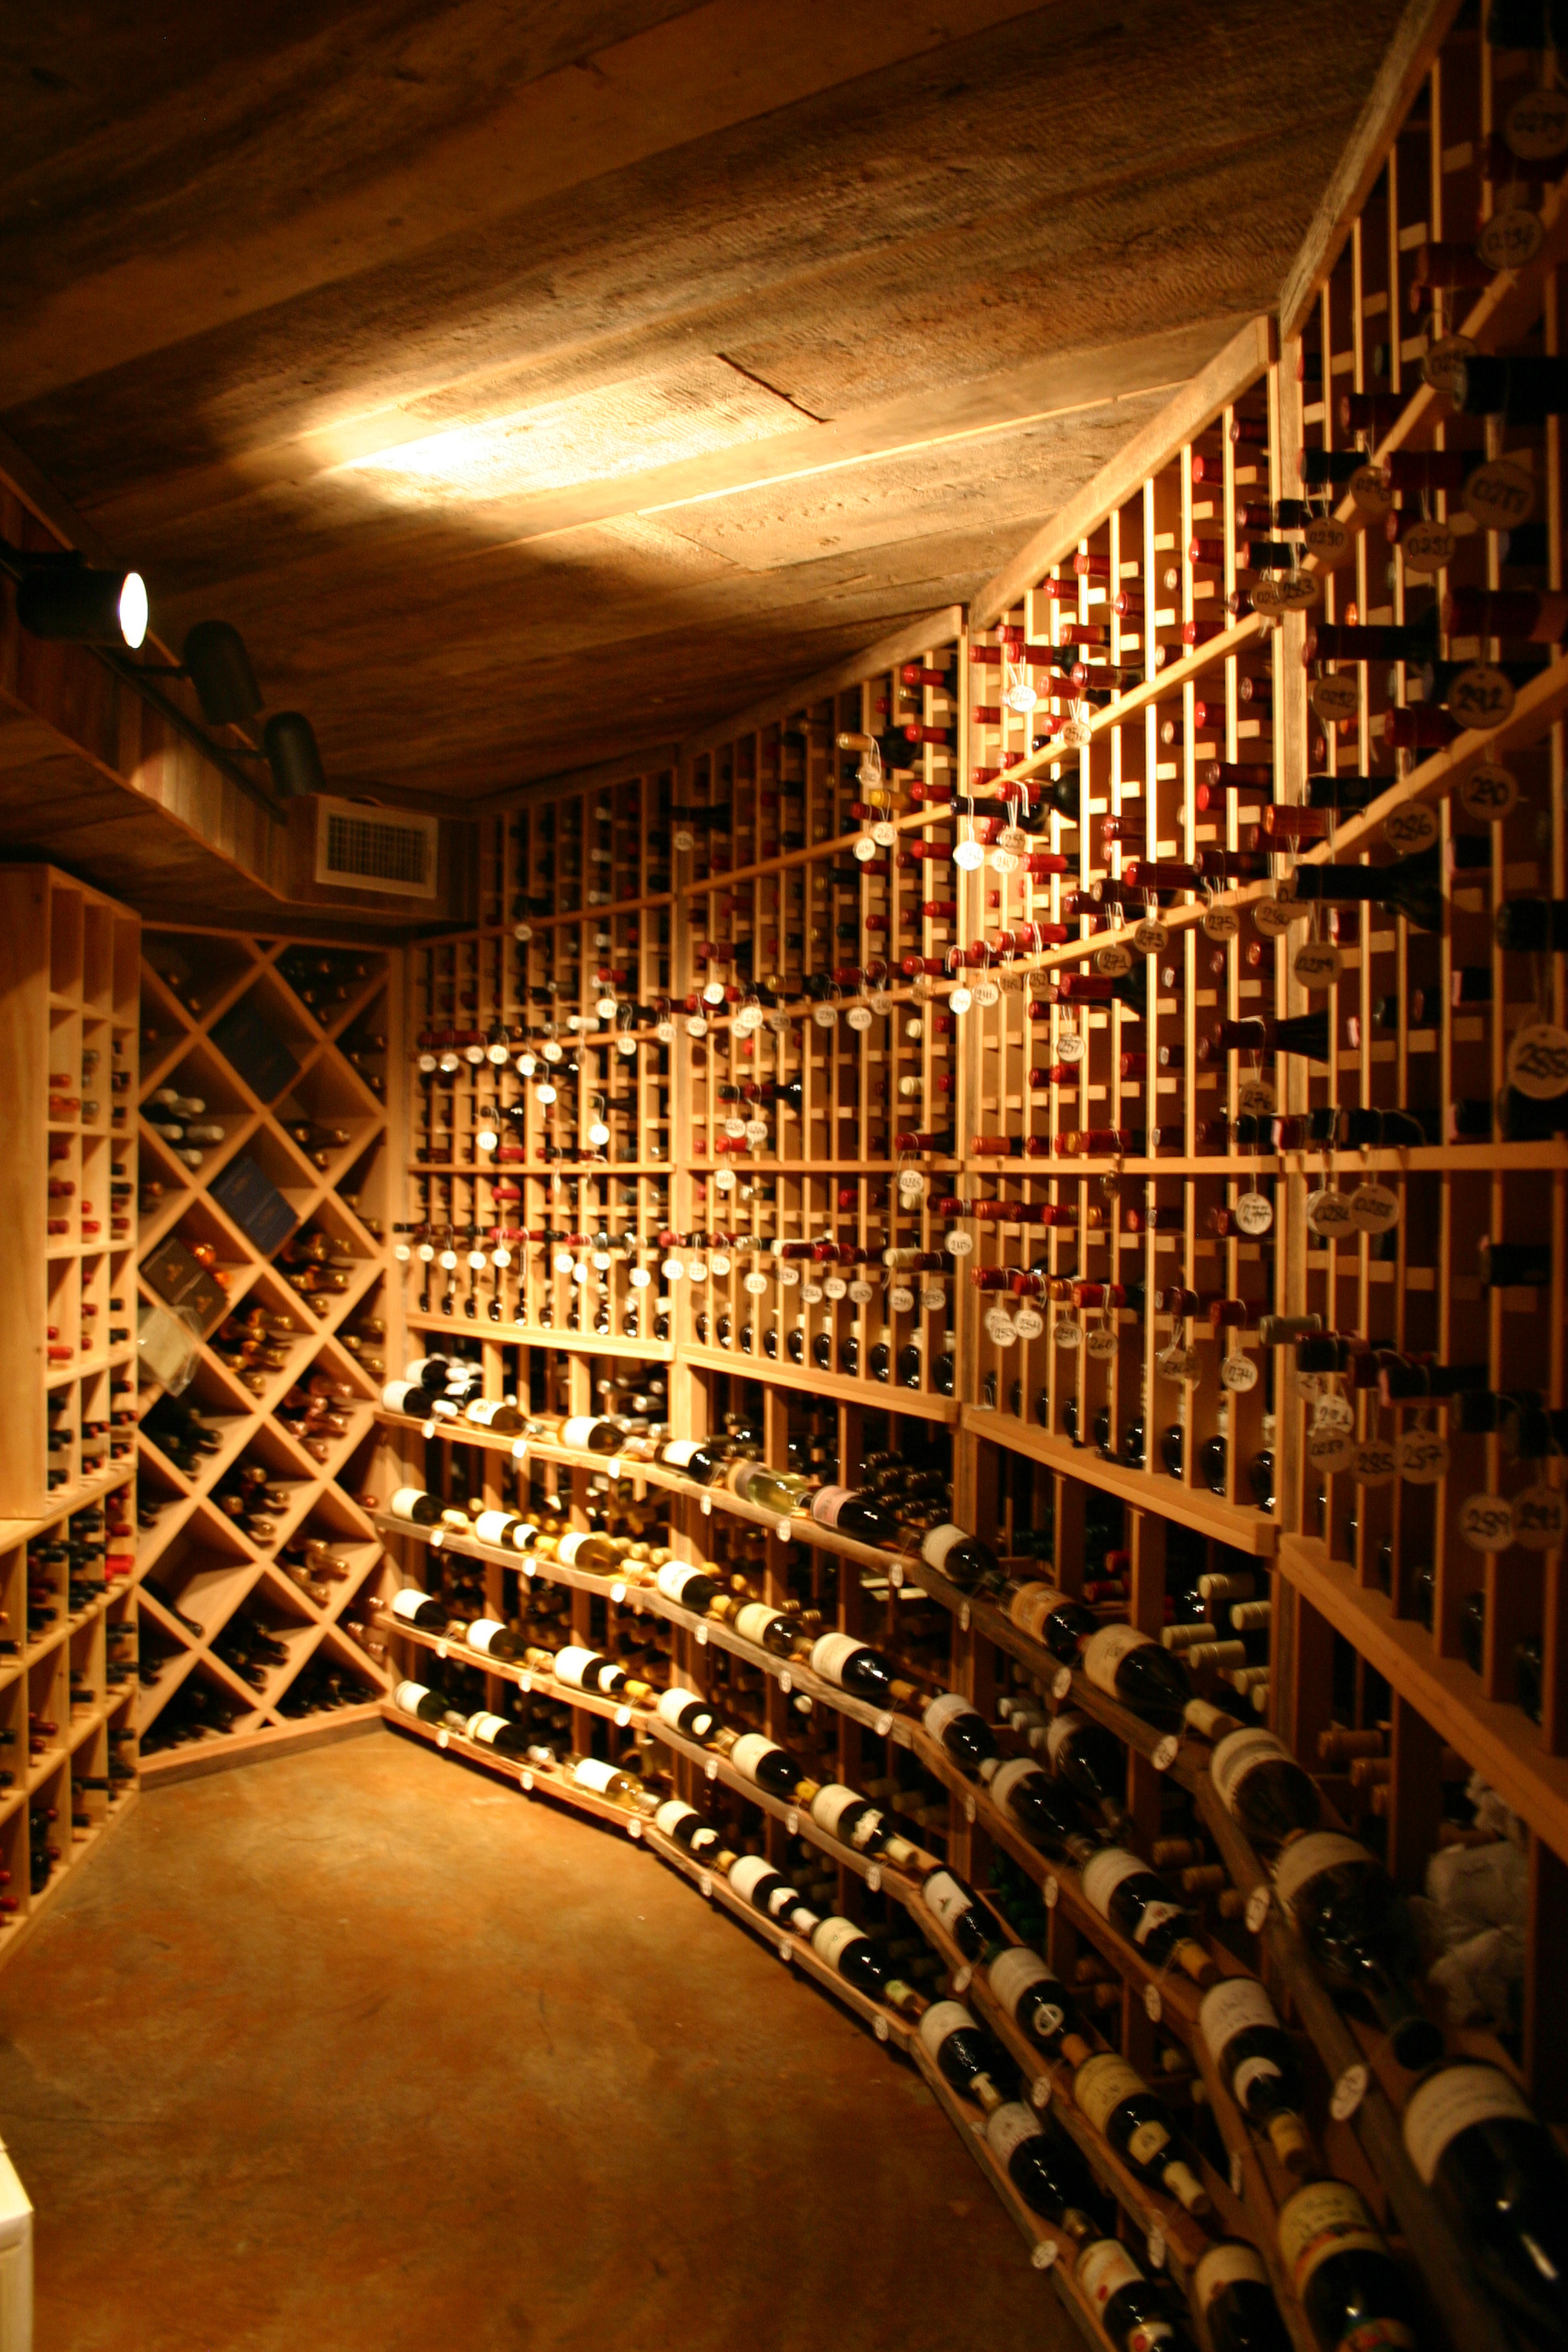 Wine Cellar Wallpapers Man Made Hq Wine Cellar Pictures 4k Wallpapers 2019